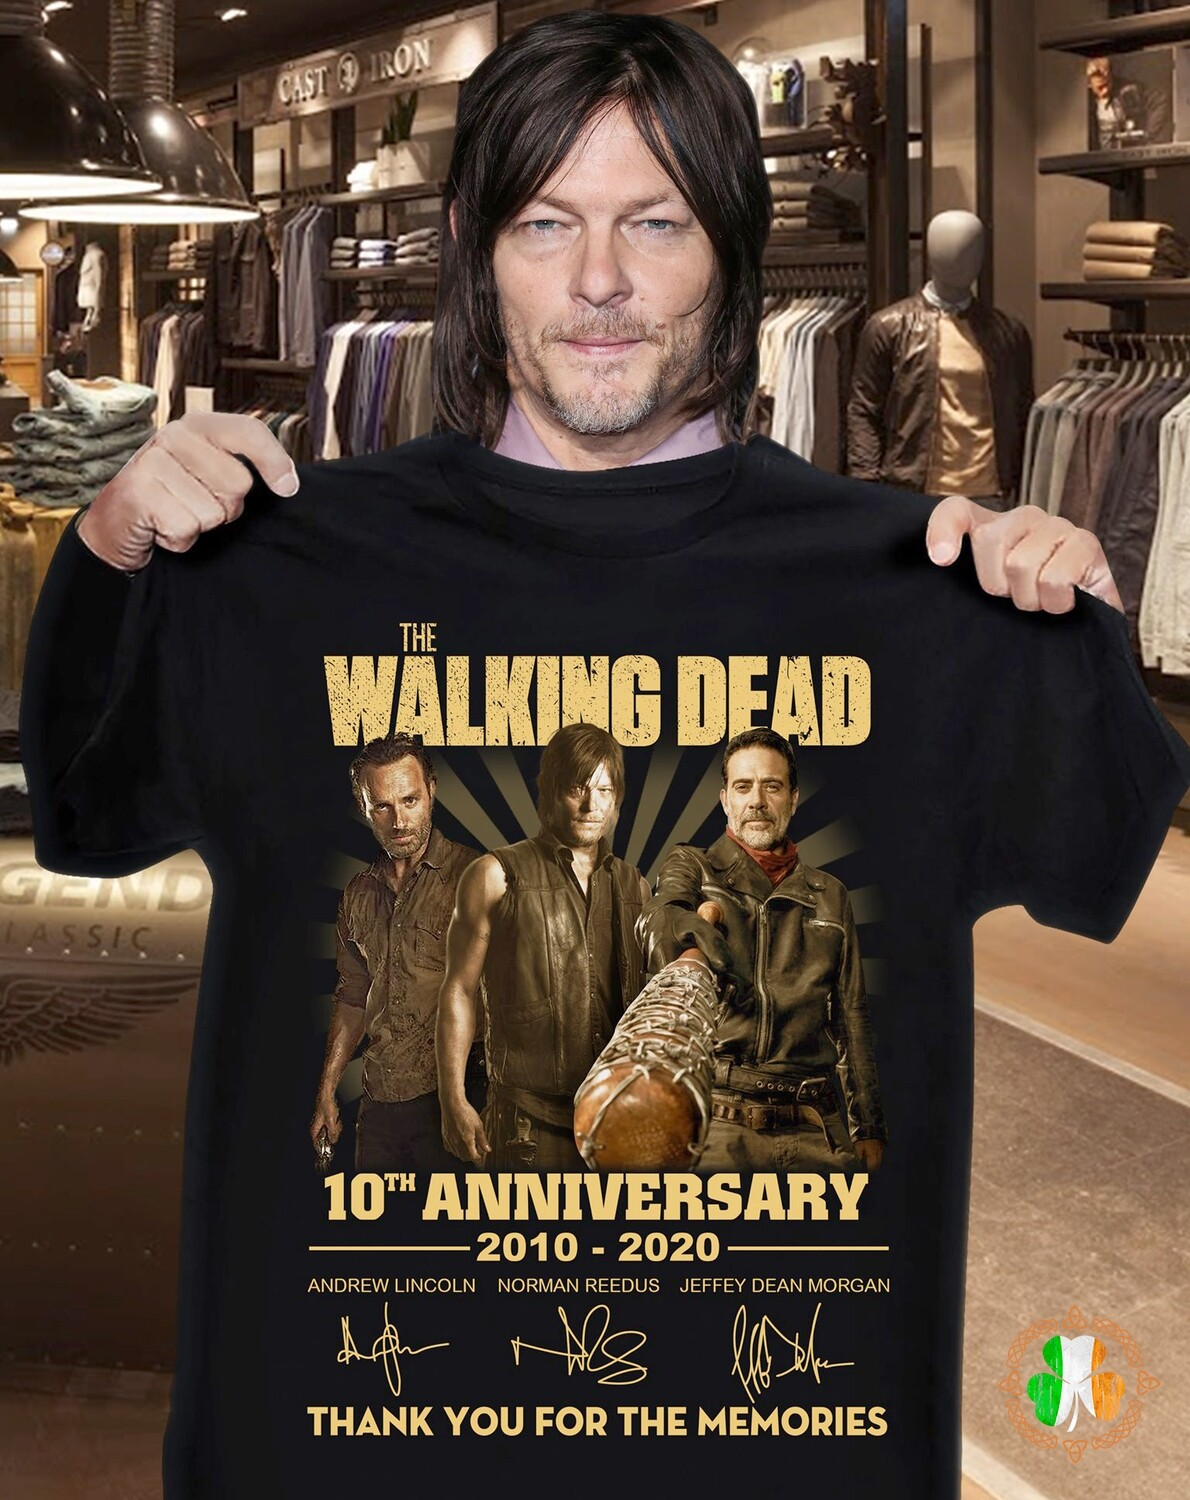 The walking dead 10th anniversary 2010 2020 full cast signatures T-Shirt